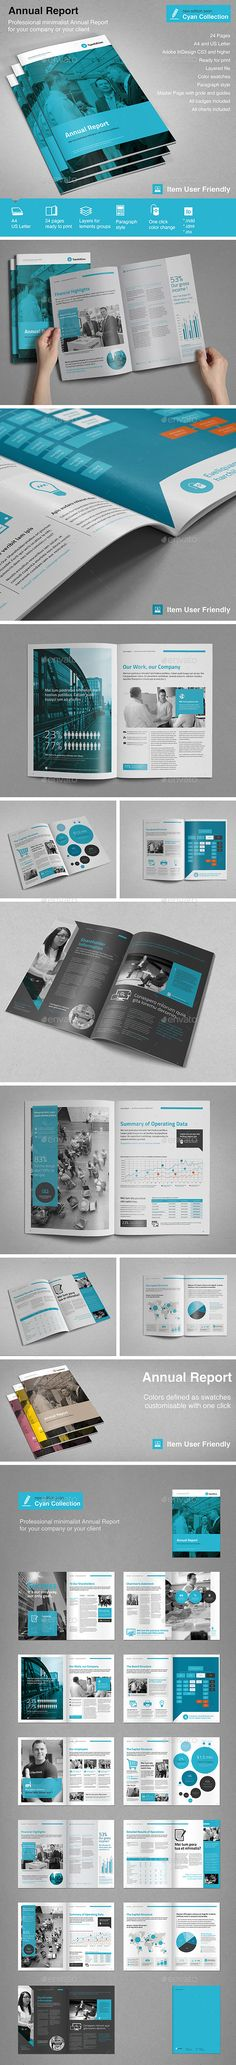 Annual Report Brochure Indesign Template 3 Indesign Templates